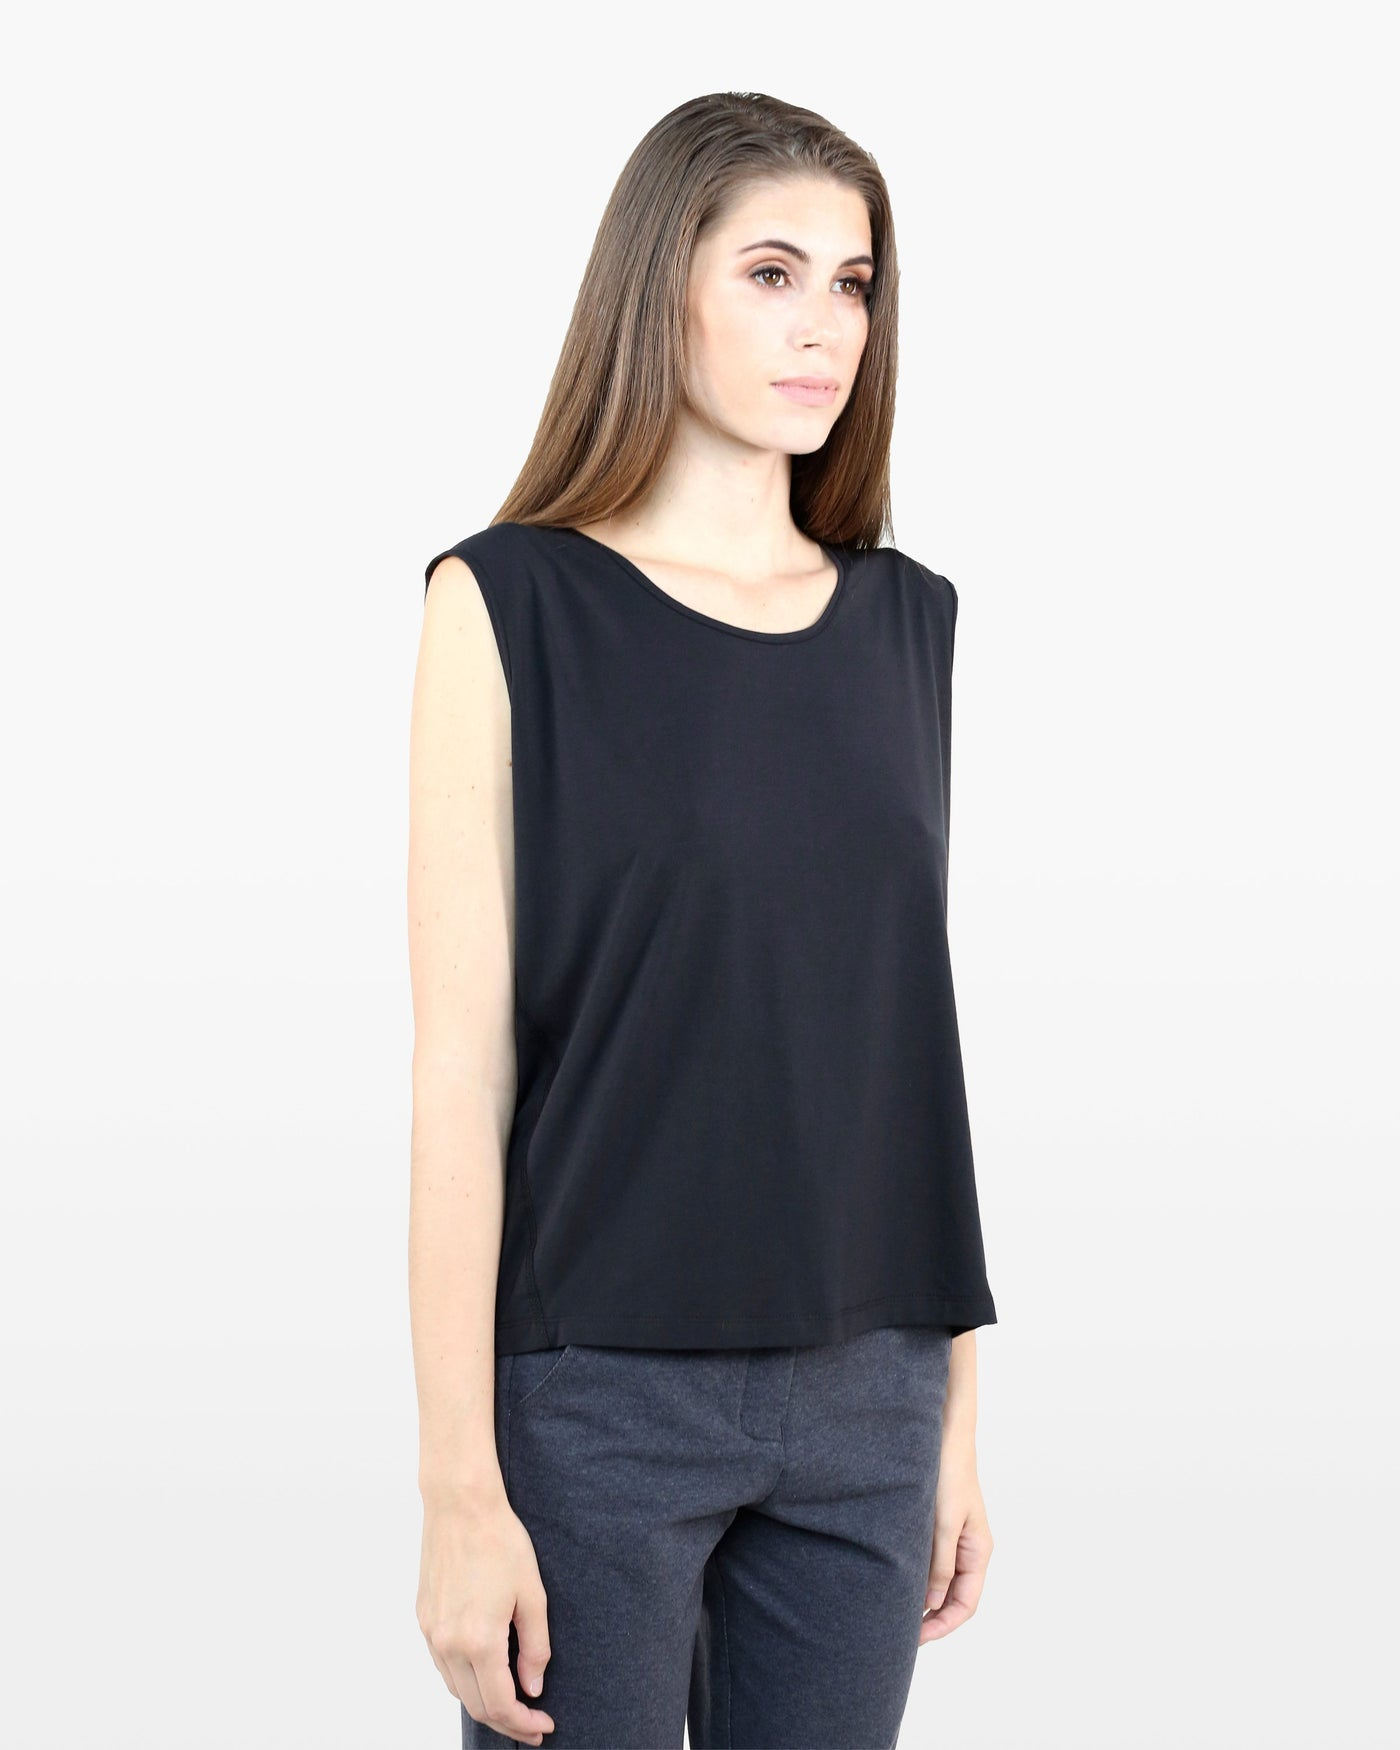 Bose Tee STJ in black